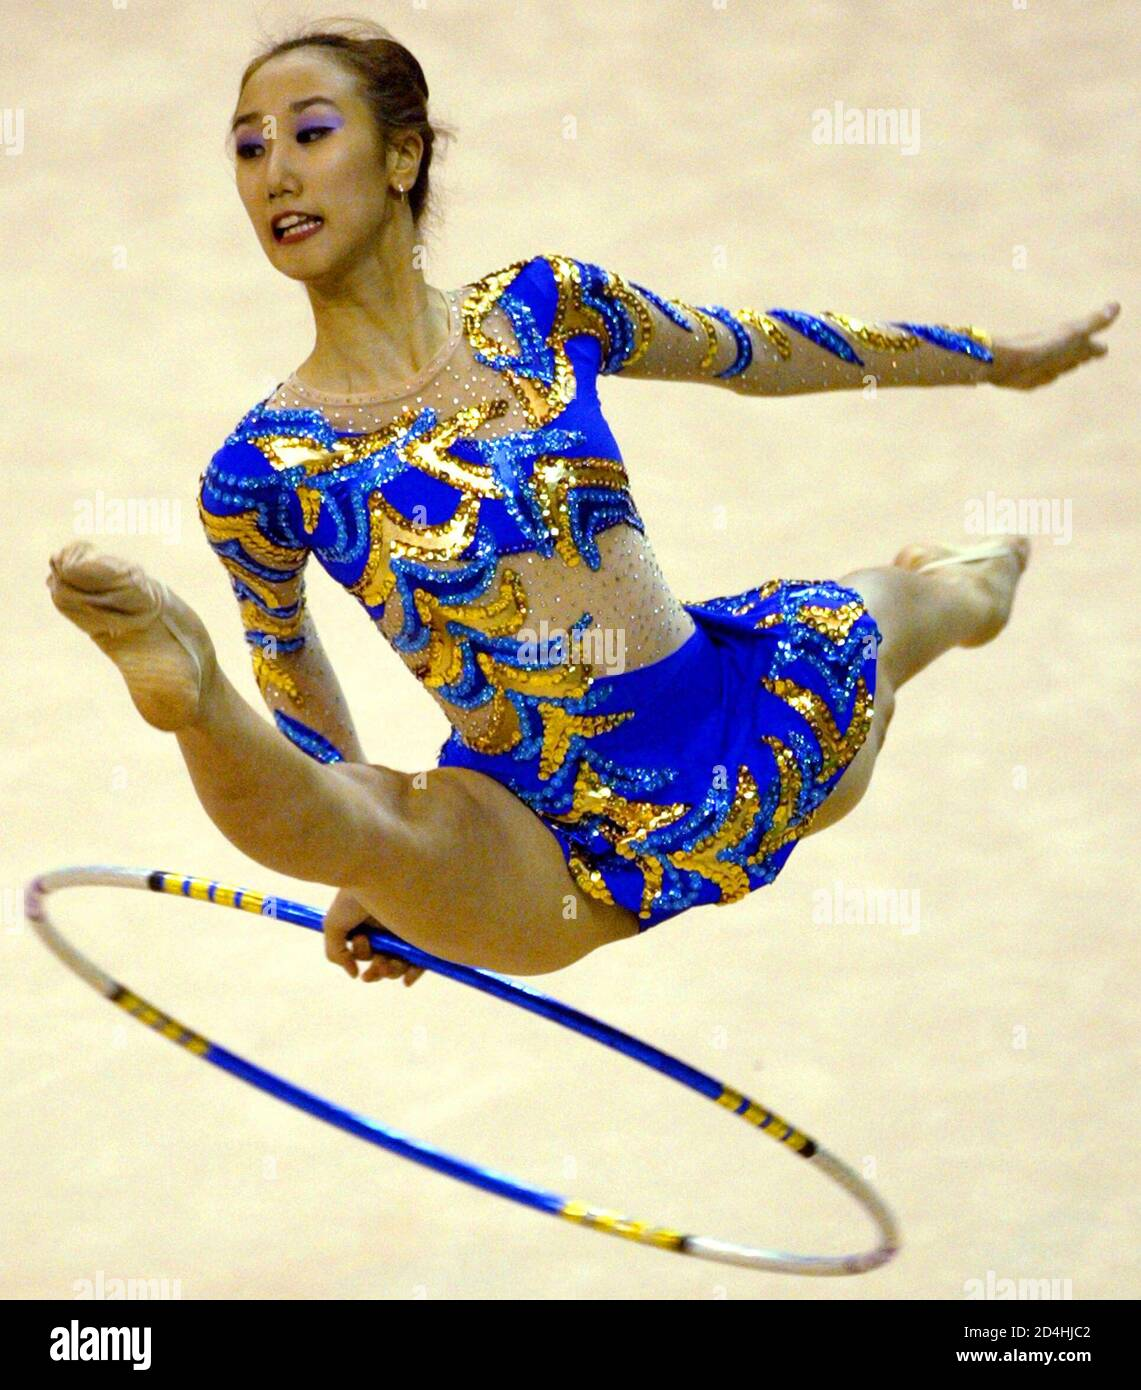 Choi Ye-lim from South Korea performs during the individual all-around rhythmic gymnastics competition at the 22nd Summer Universiade Games in Kyeongju August 23, 2003. REUTERS/Kim Kyung-Hoon  KKH/RCS Stock Photo